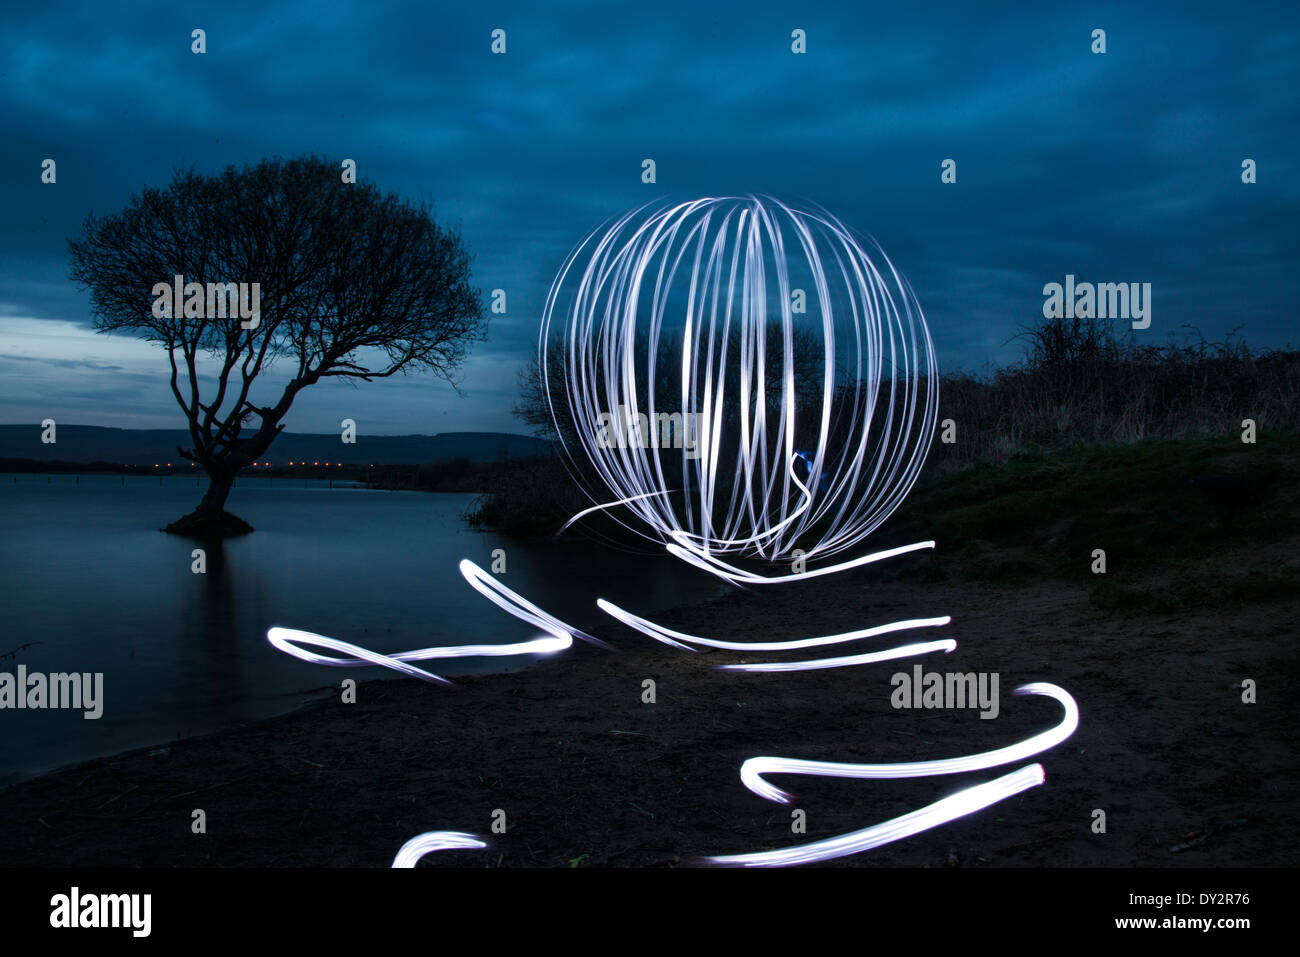 Light painting images at twilight - Stock Image